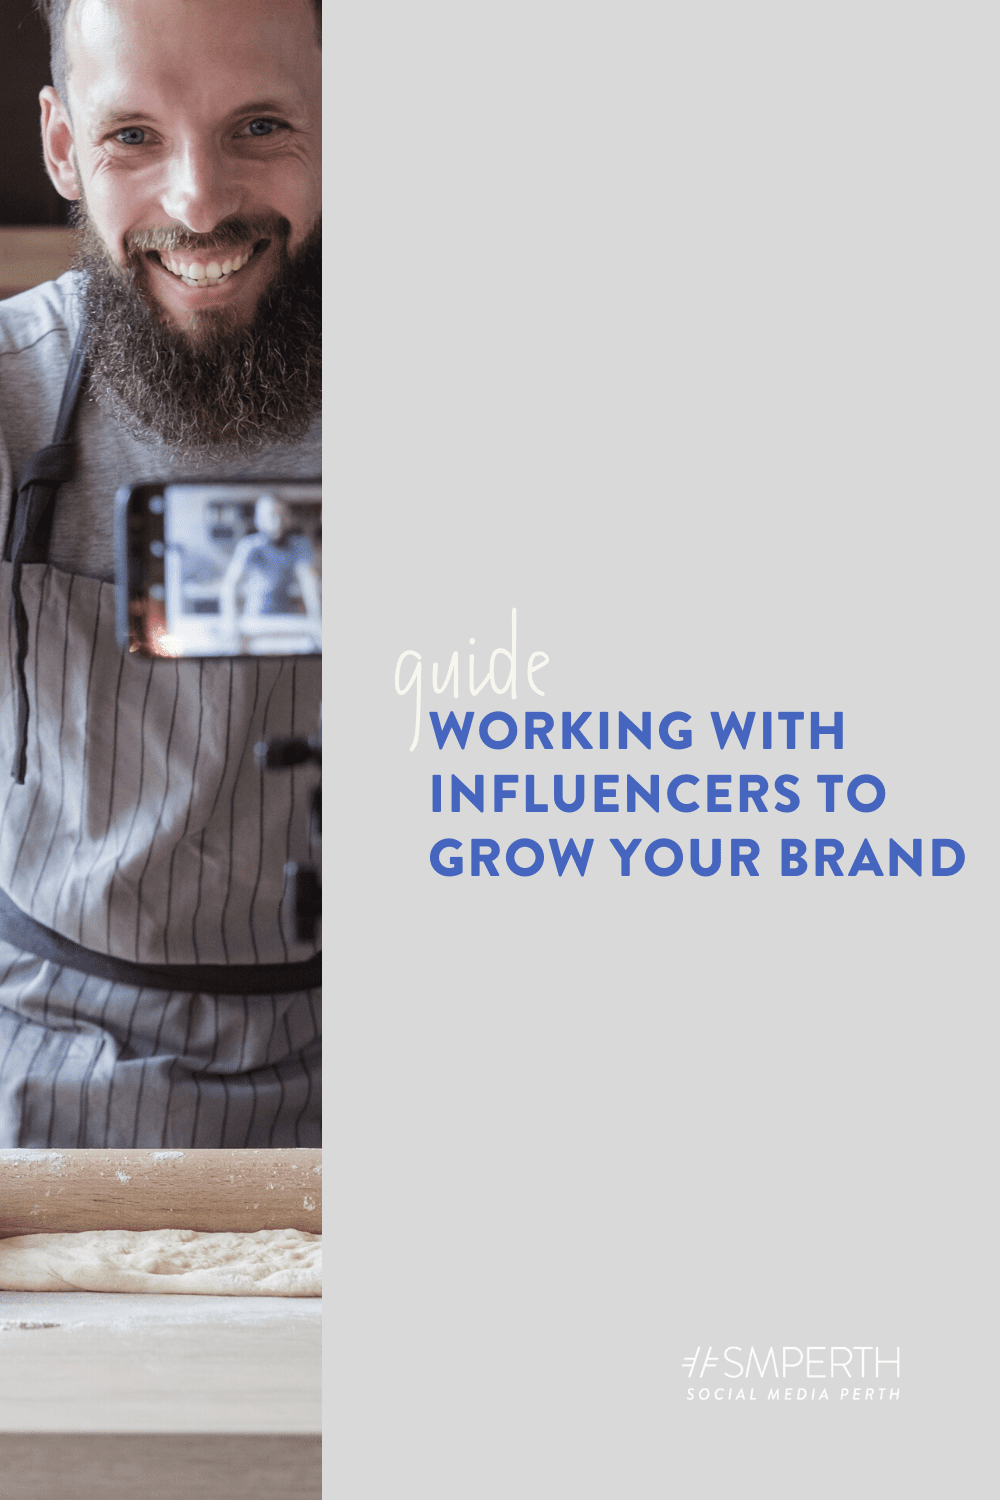 Working with influencers to grow your brand